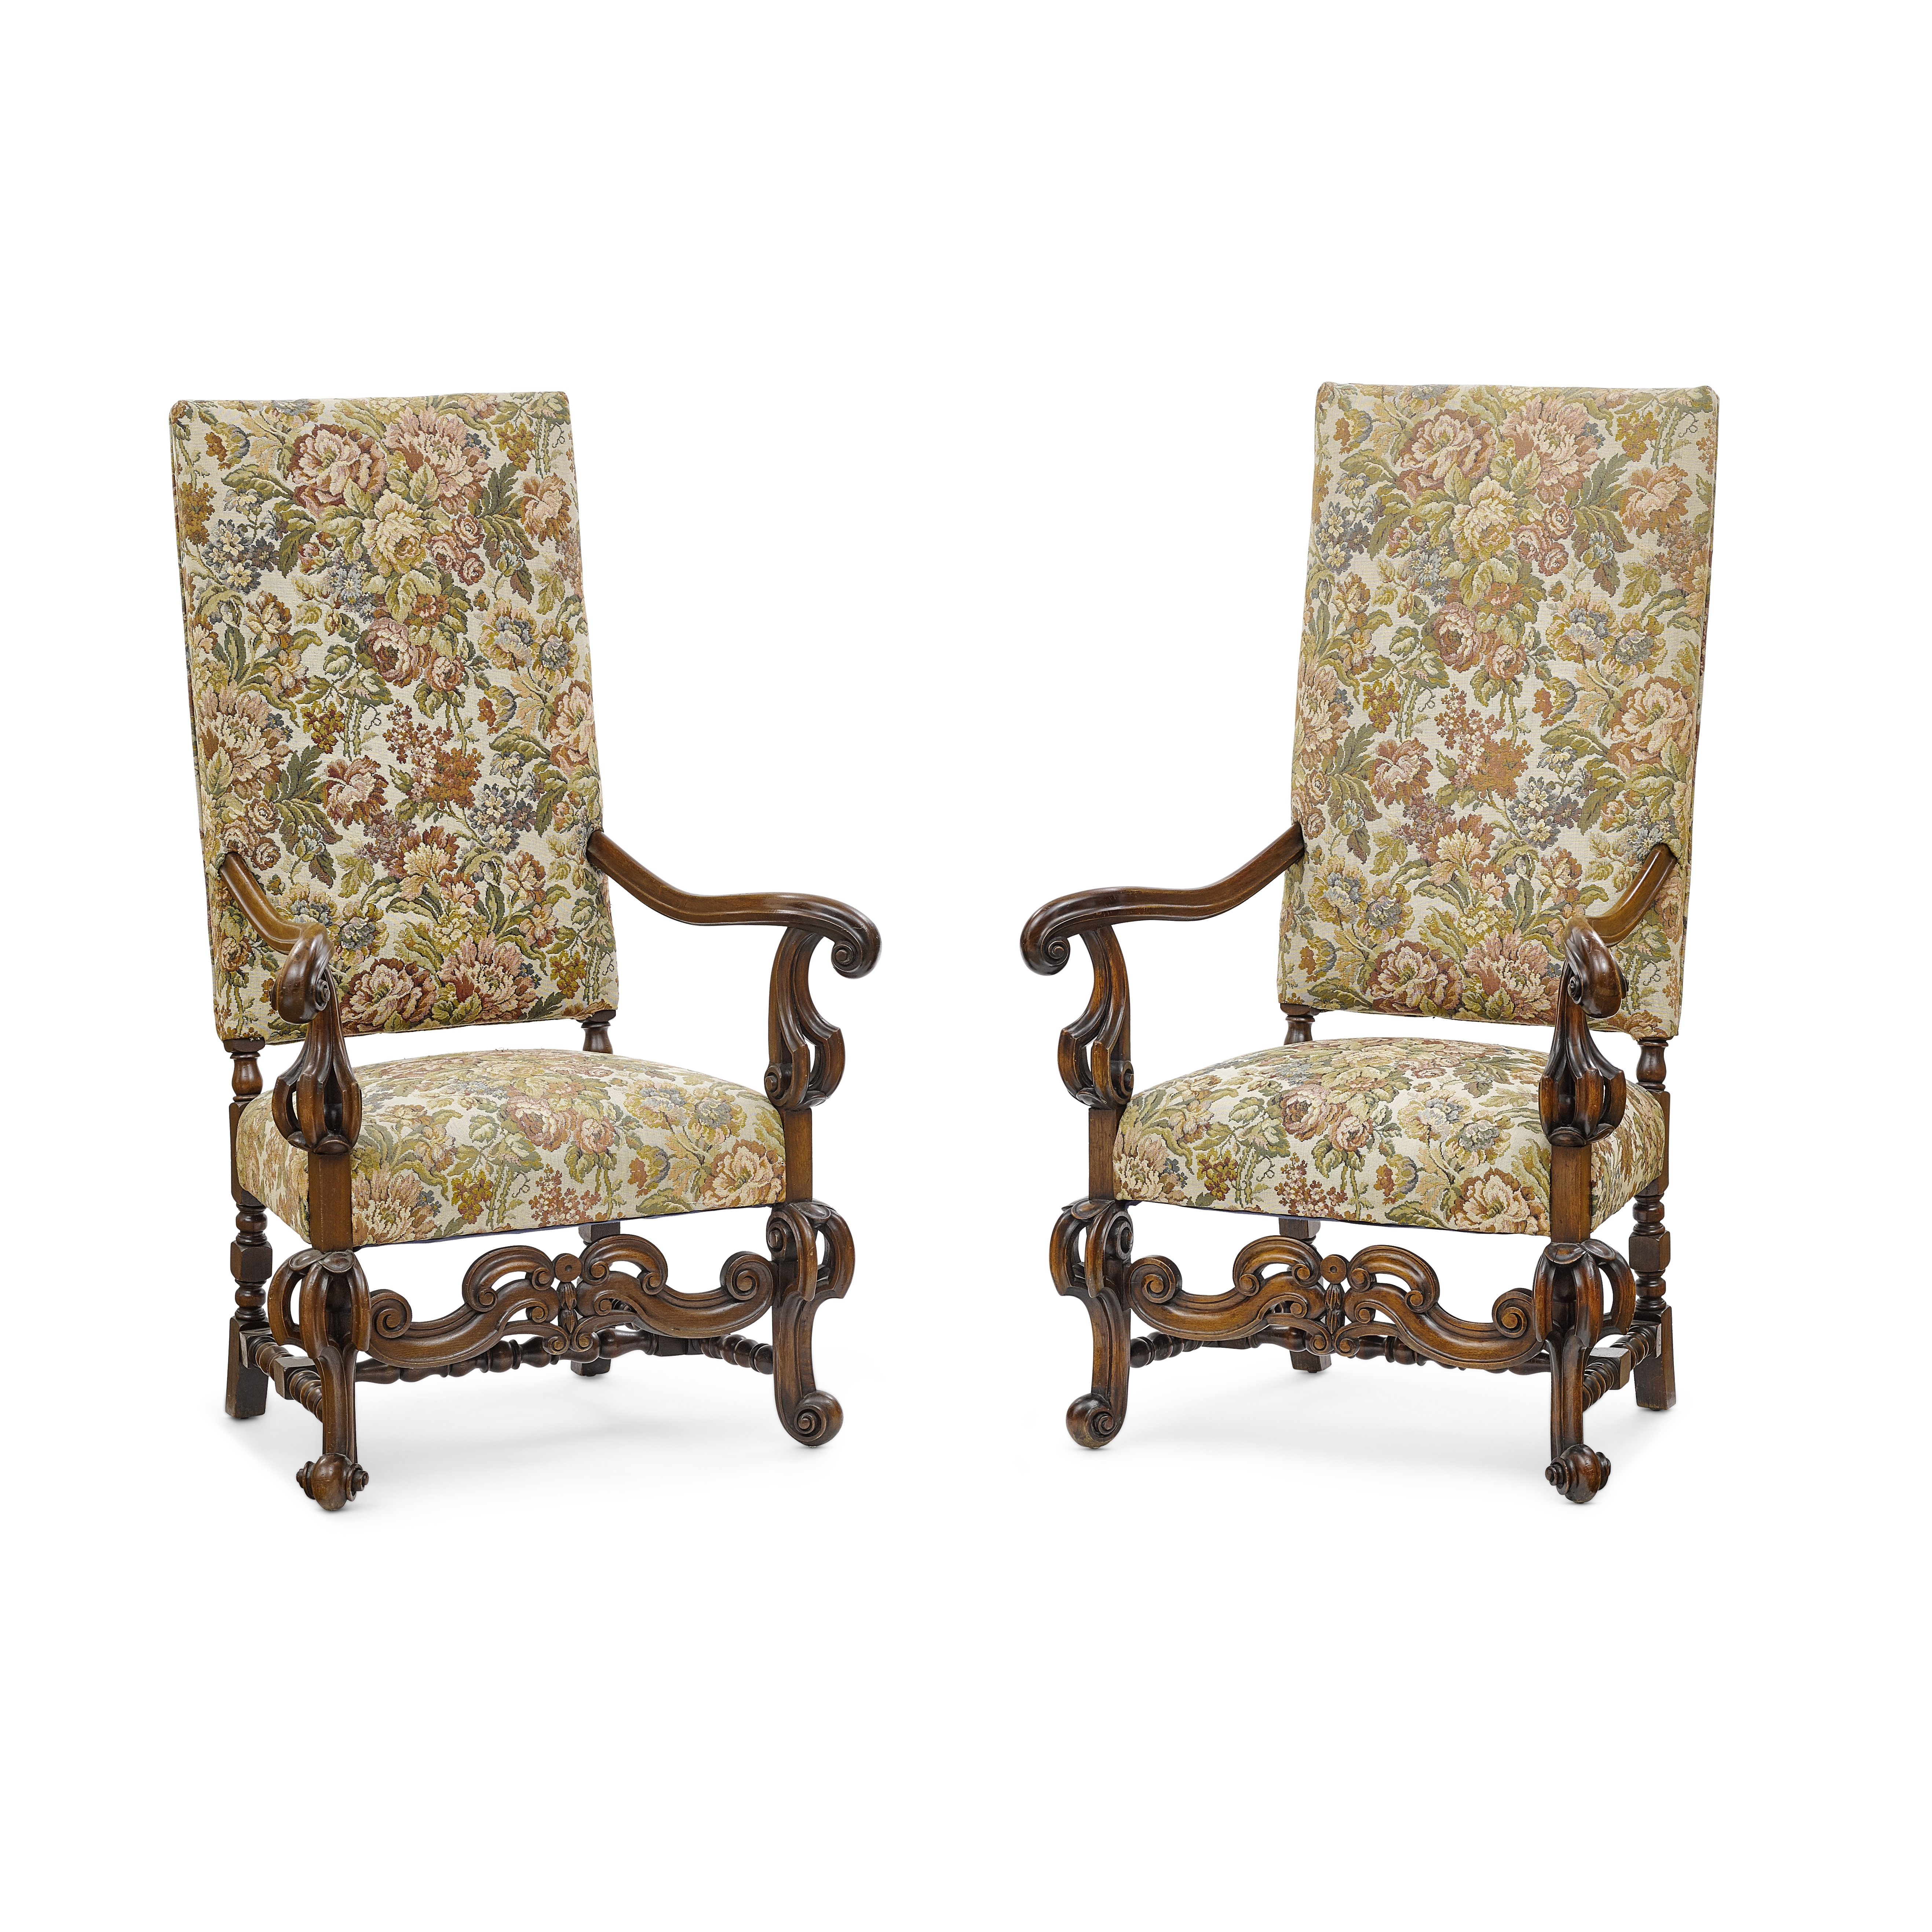 Lot 120 - A Pair of Continental Baroque Style Upholstered Walnut Armchairs Late 19th/early 20th century